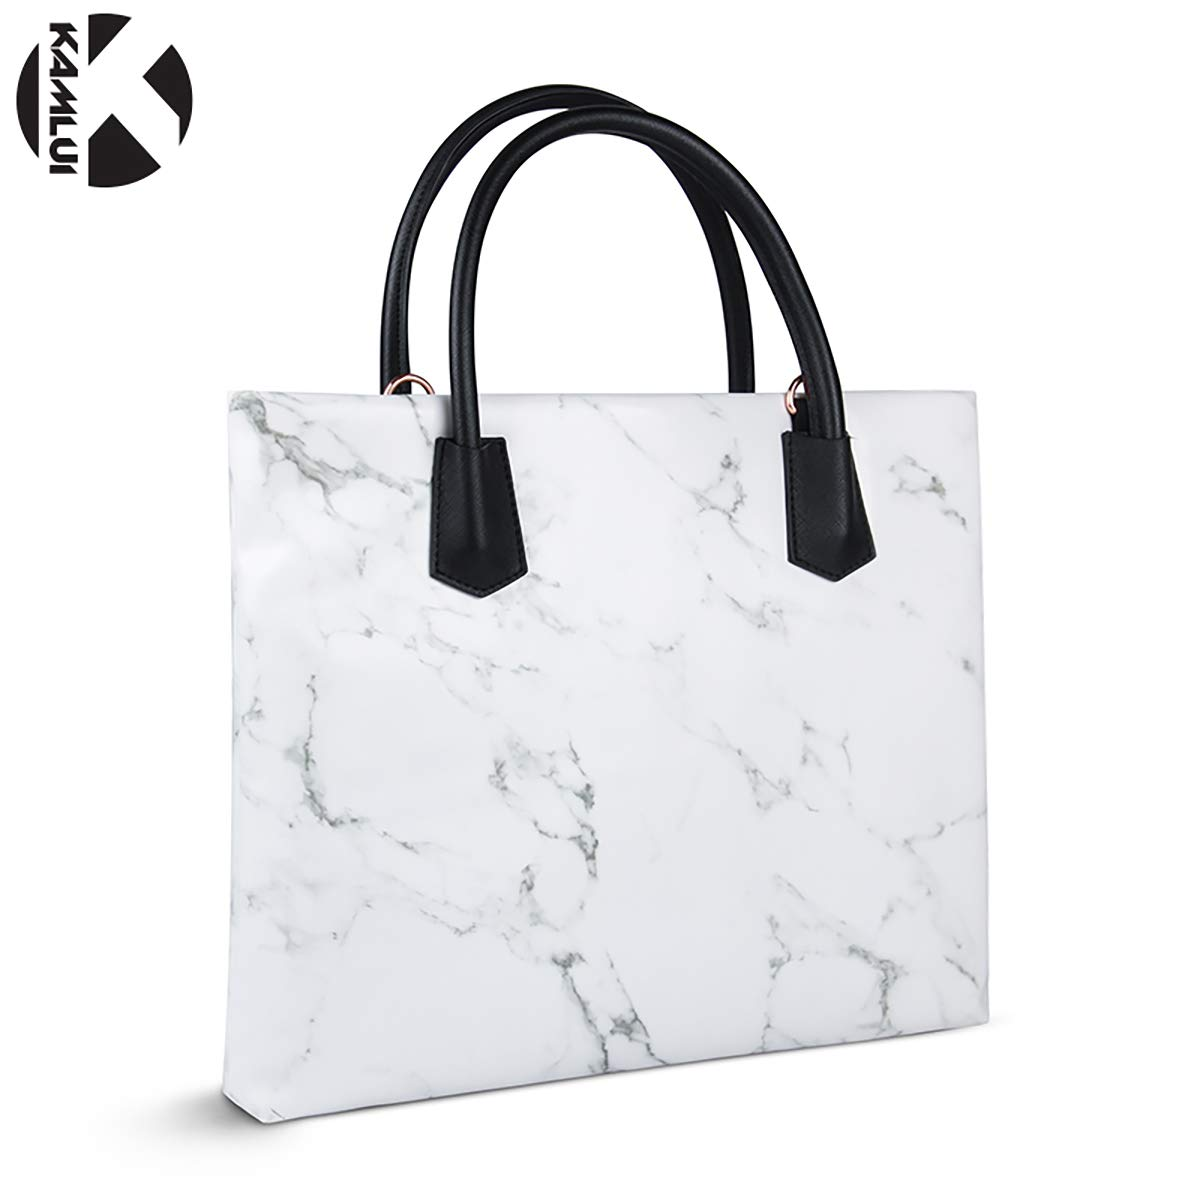 96aaa5efa506f5 KAMLUI Laptop Bag 14 Inch-for Women - Marble Material Waterproof Business  Shoulder Womens Laptop Bag Messenger Briefcase,for Dell Lenovo HP Samsung  Apple ...